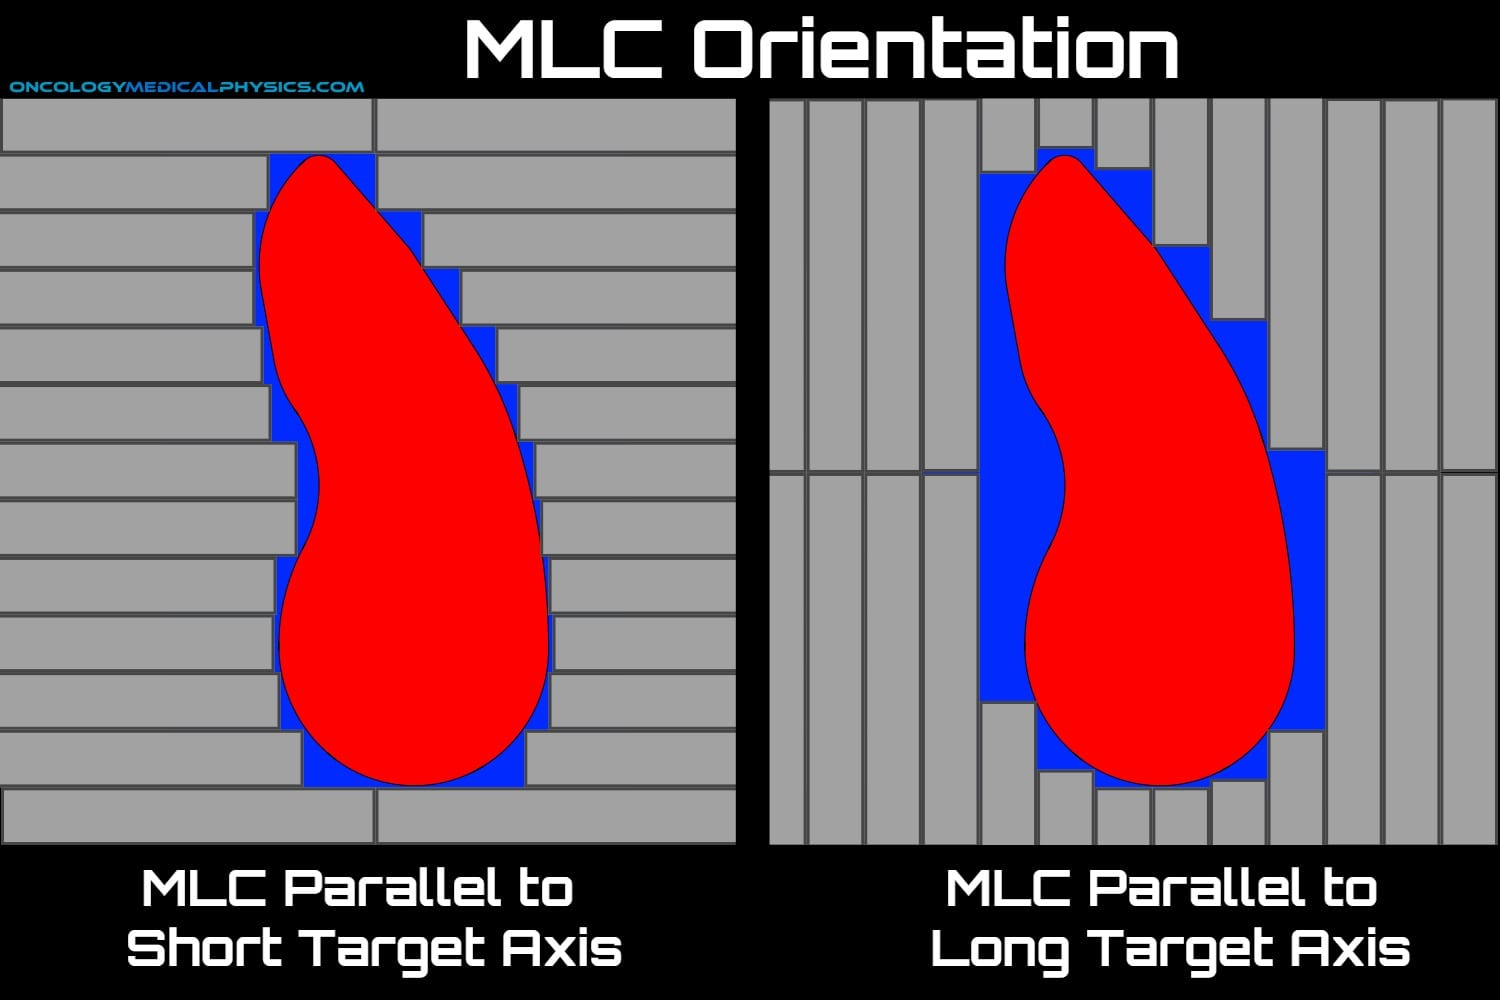 MLC orientation, collimator rotation, is important to minimize normal tissue dose.